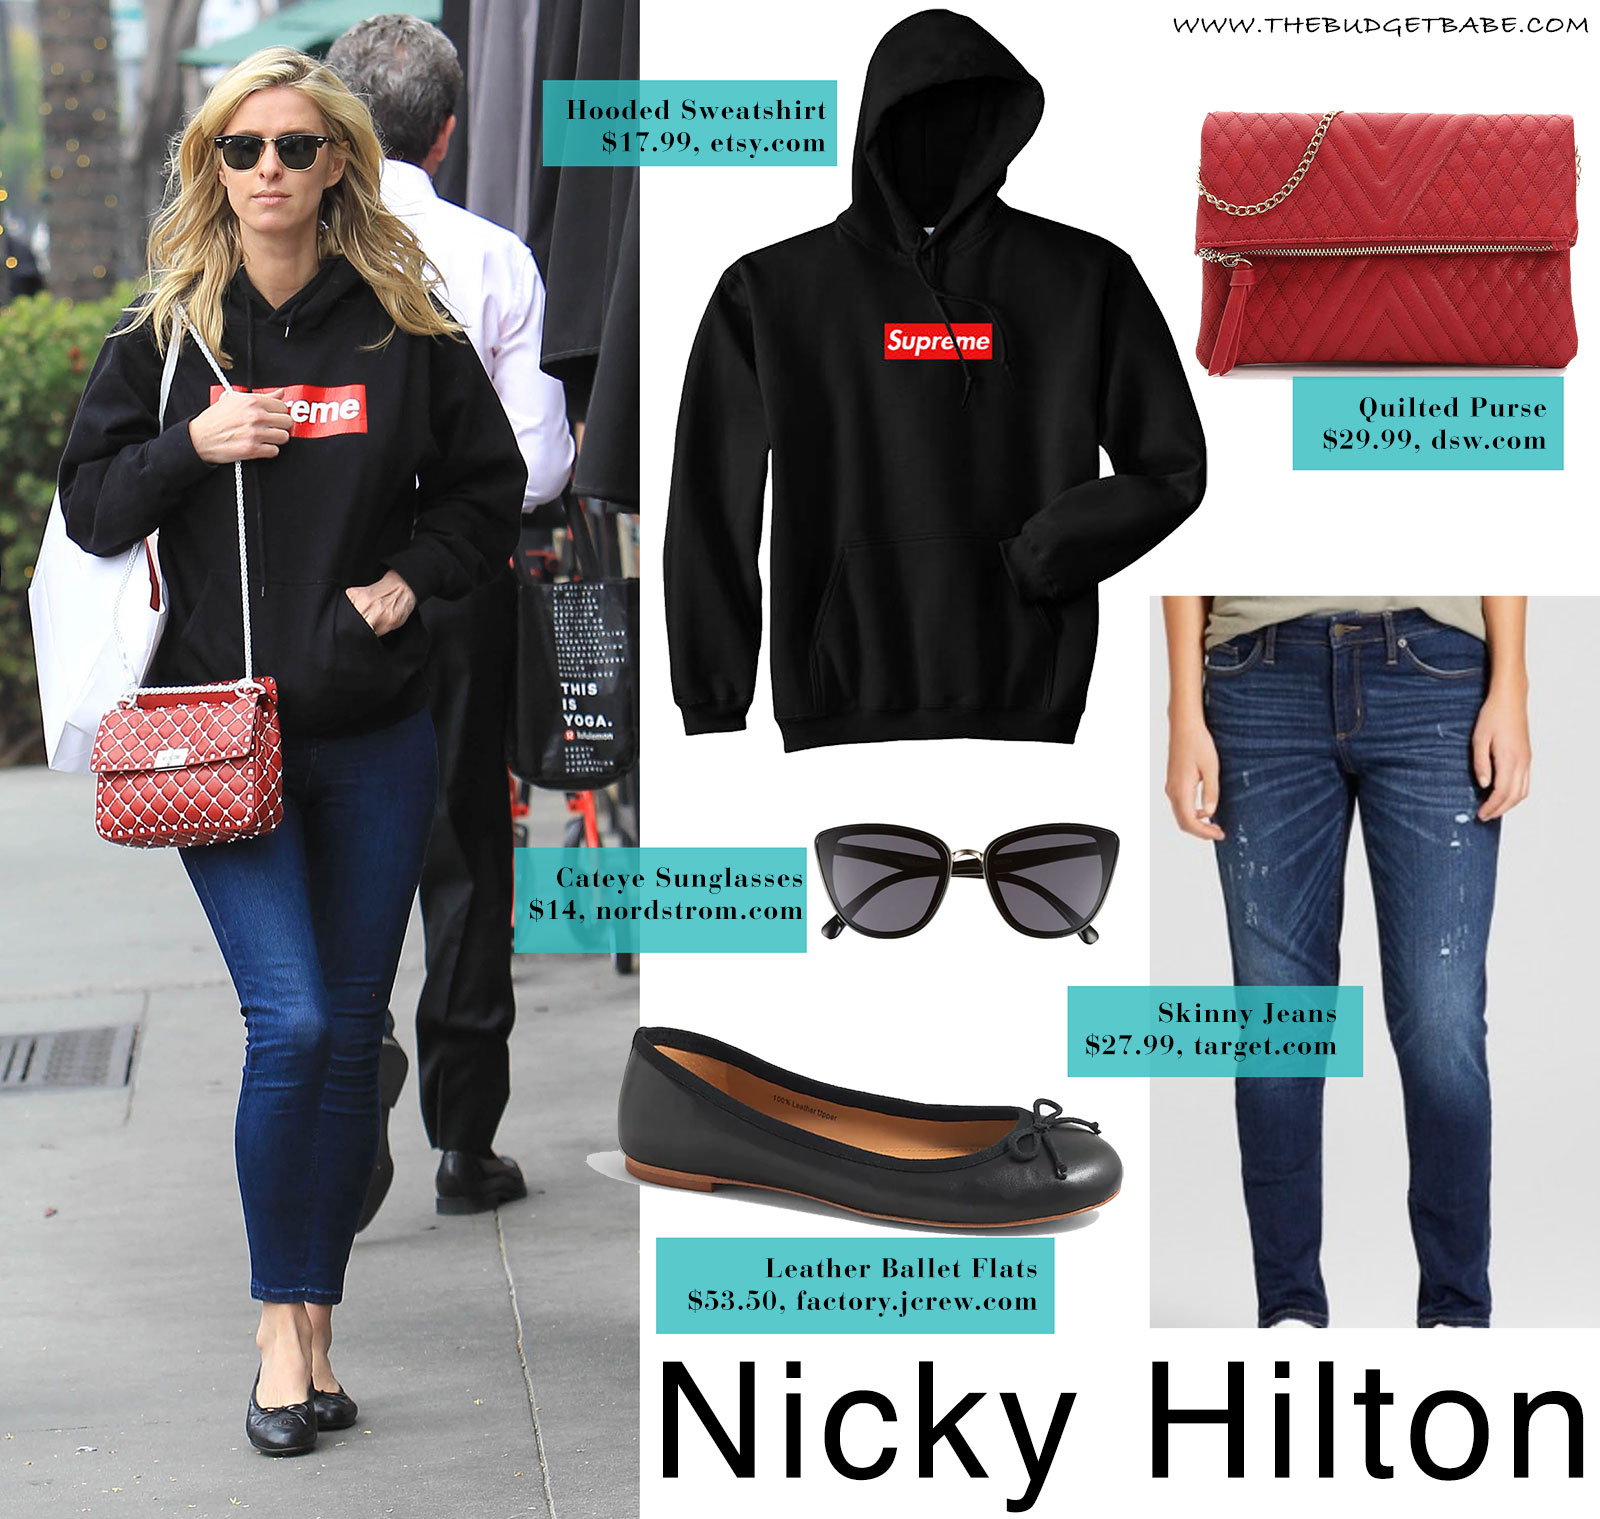 Nicky Hilton's Supreme sweatshirt and Valentino bag look for less